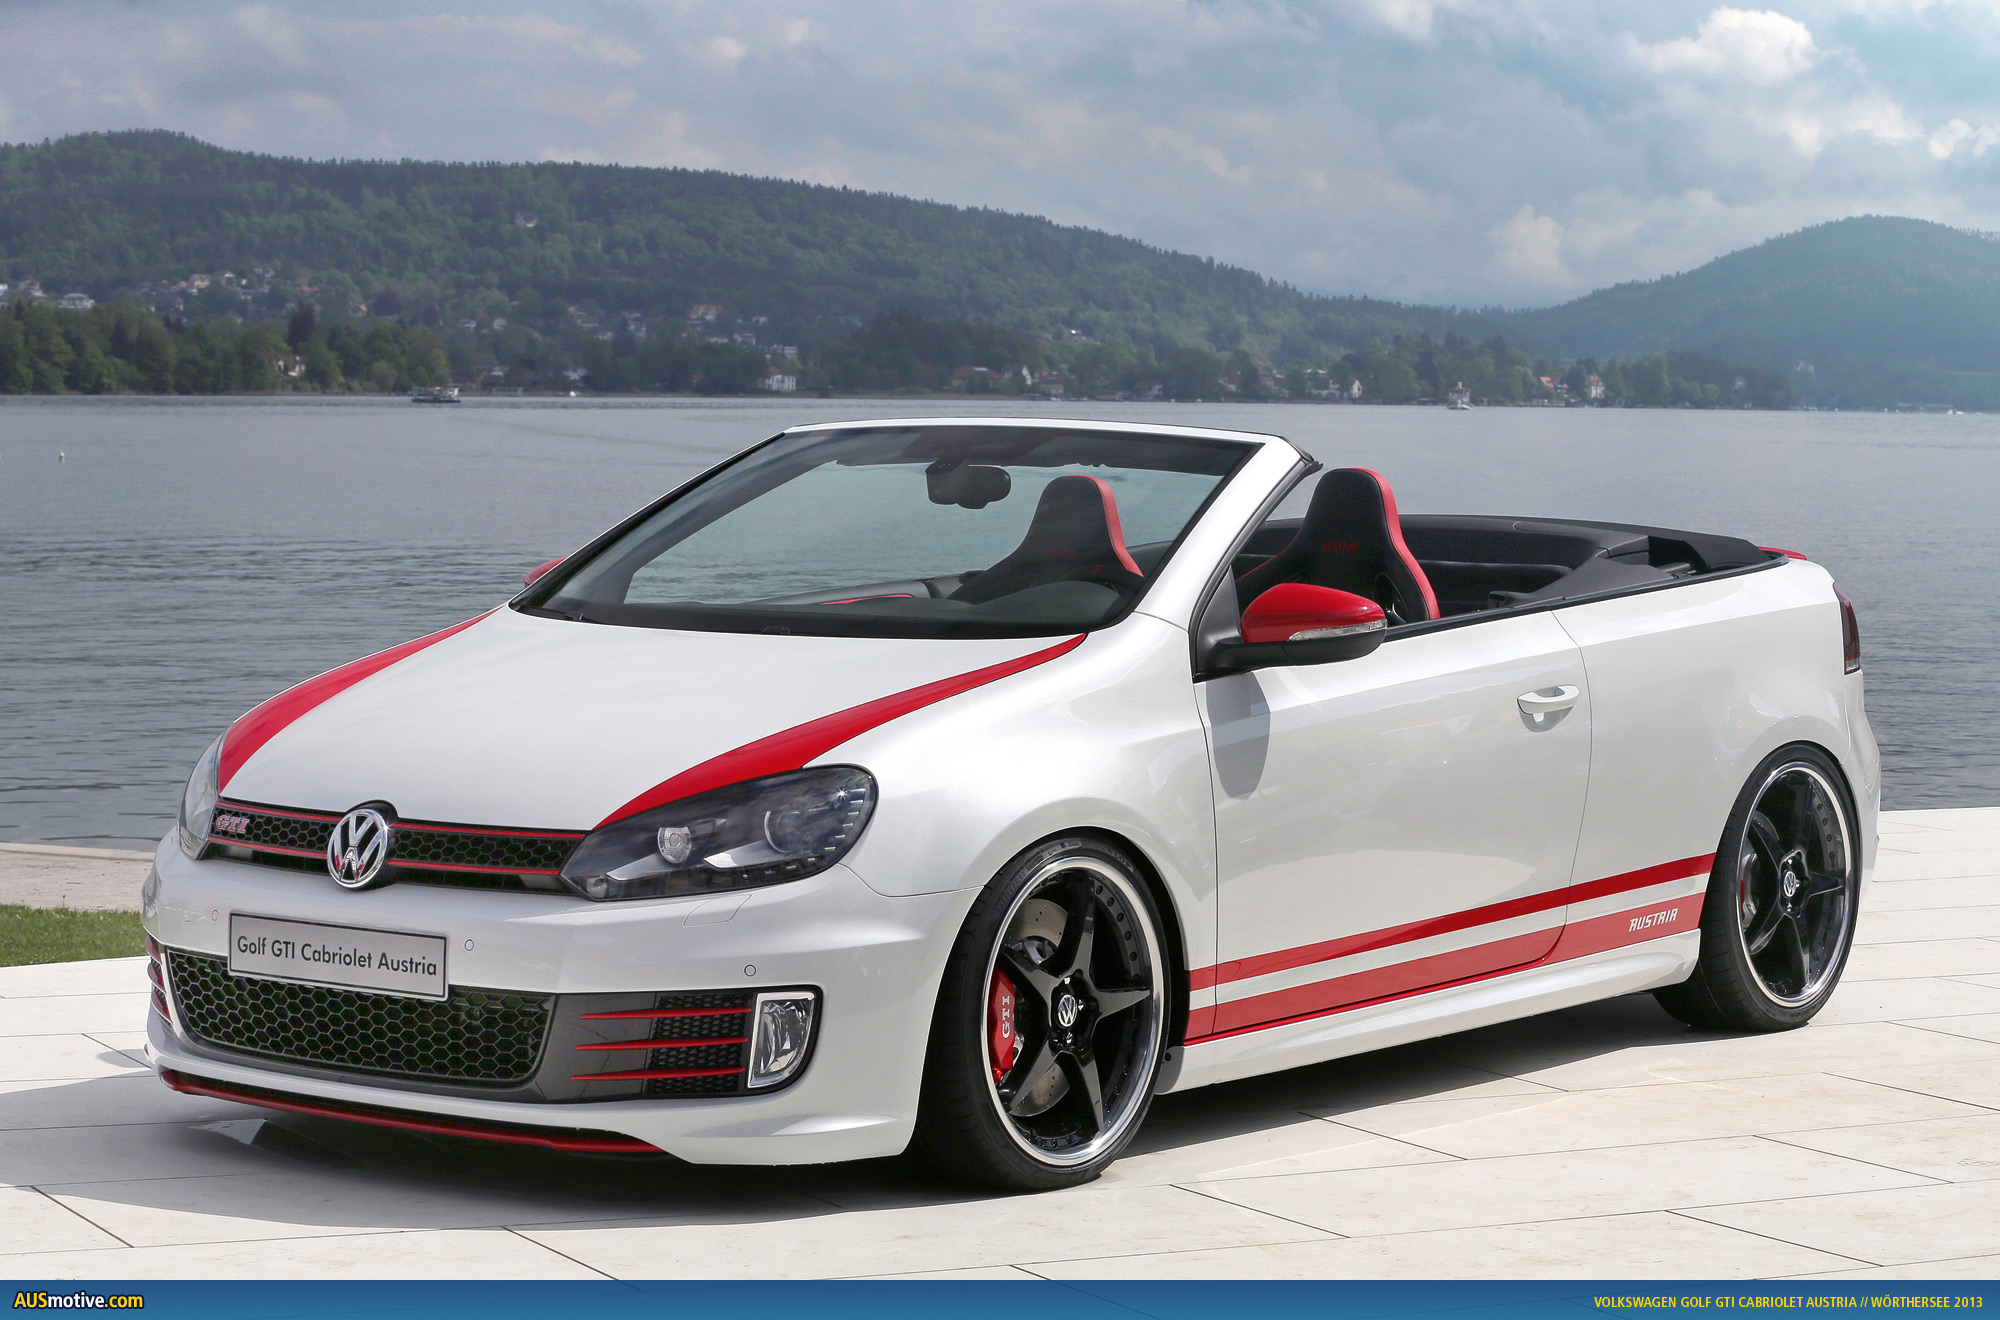 w rthersee 2013 volkswagen golf gti cabrio austria. Black Bedroom Furniture Sets. Home Design Ideas